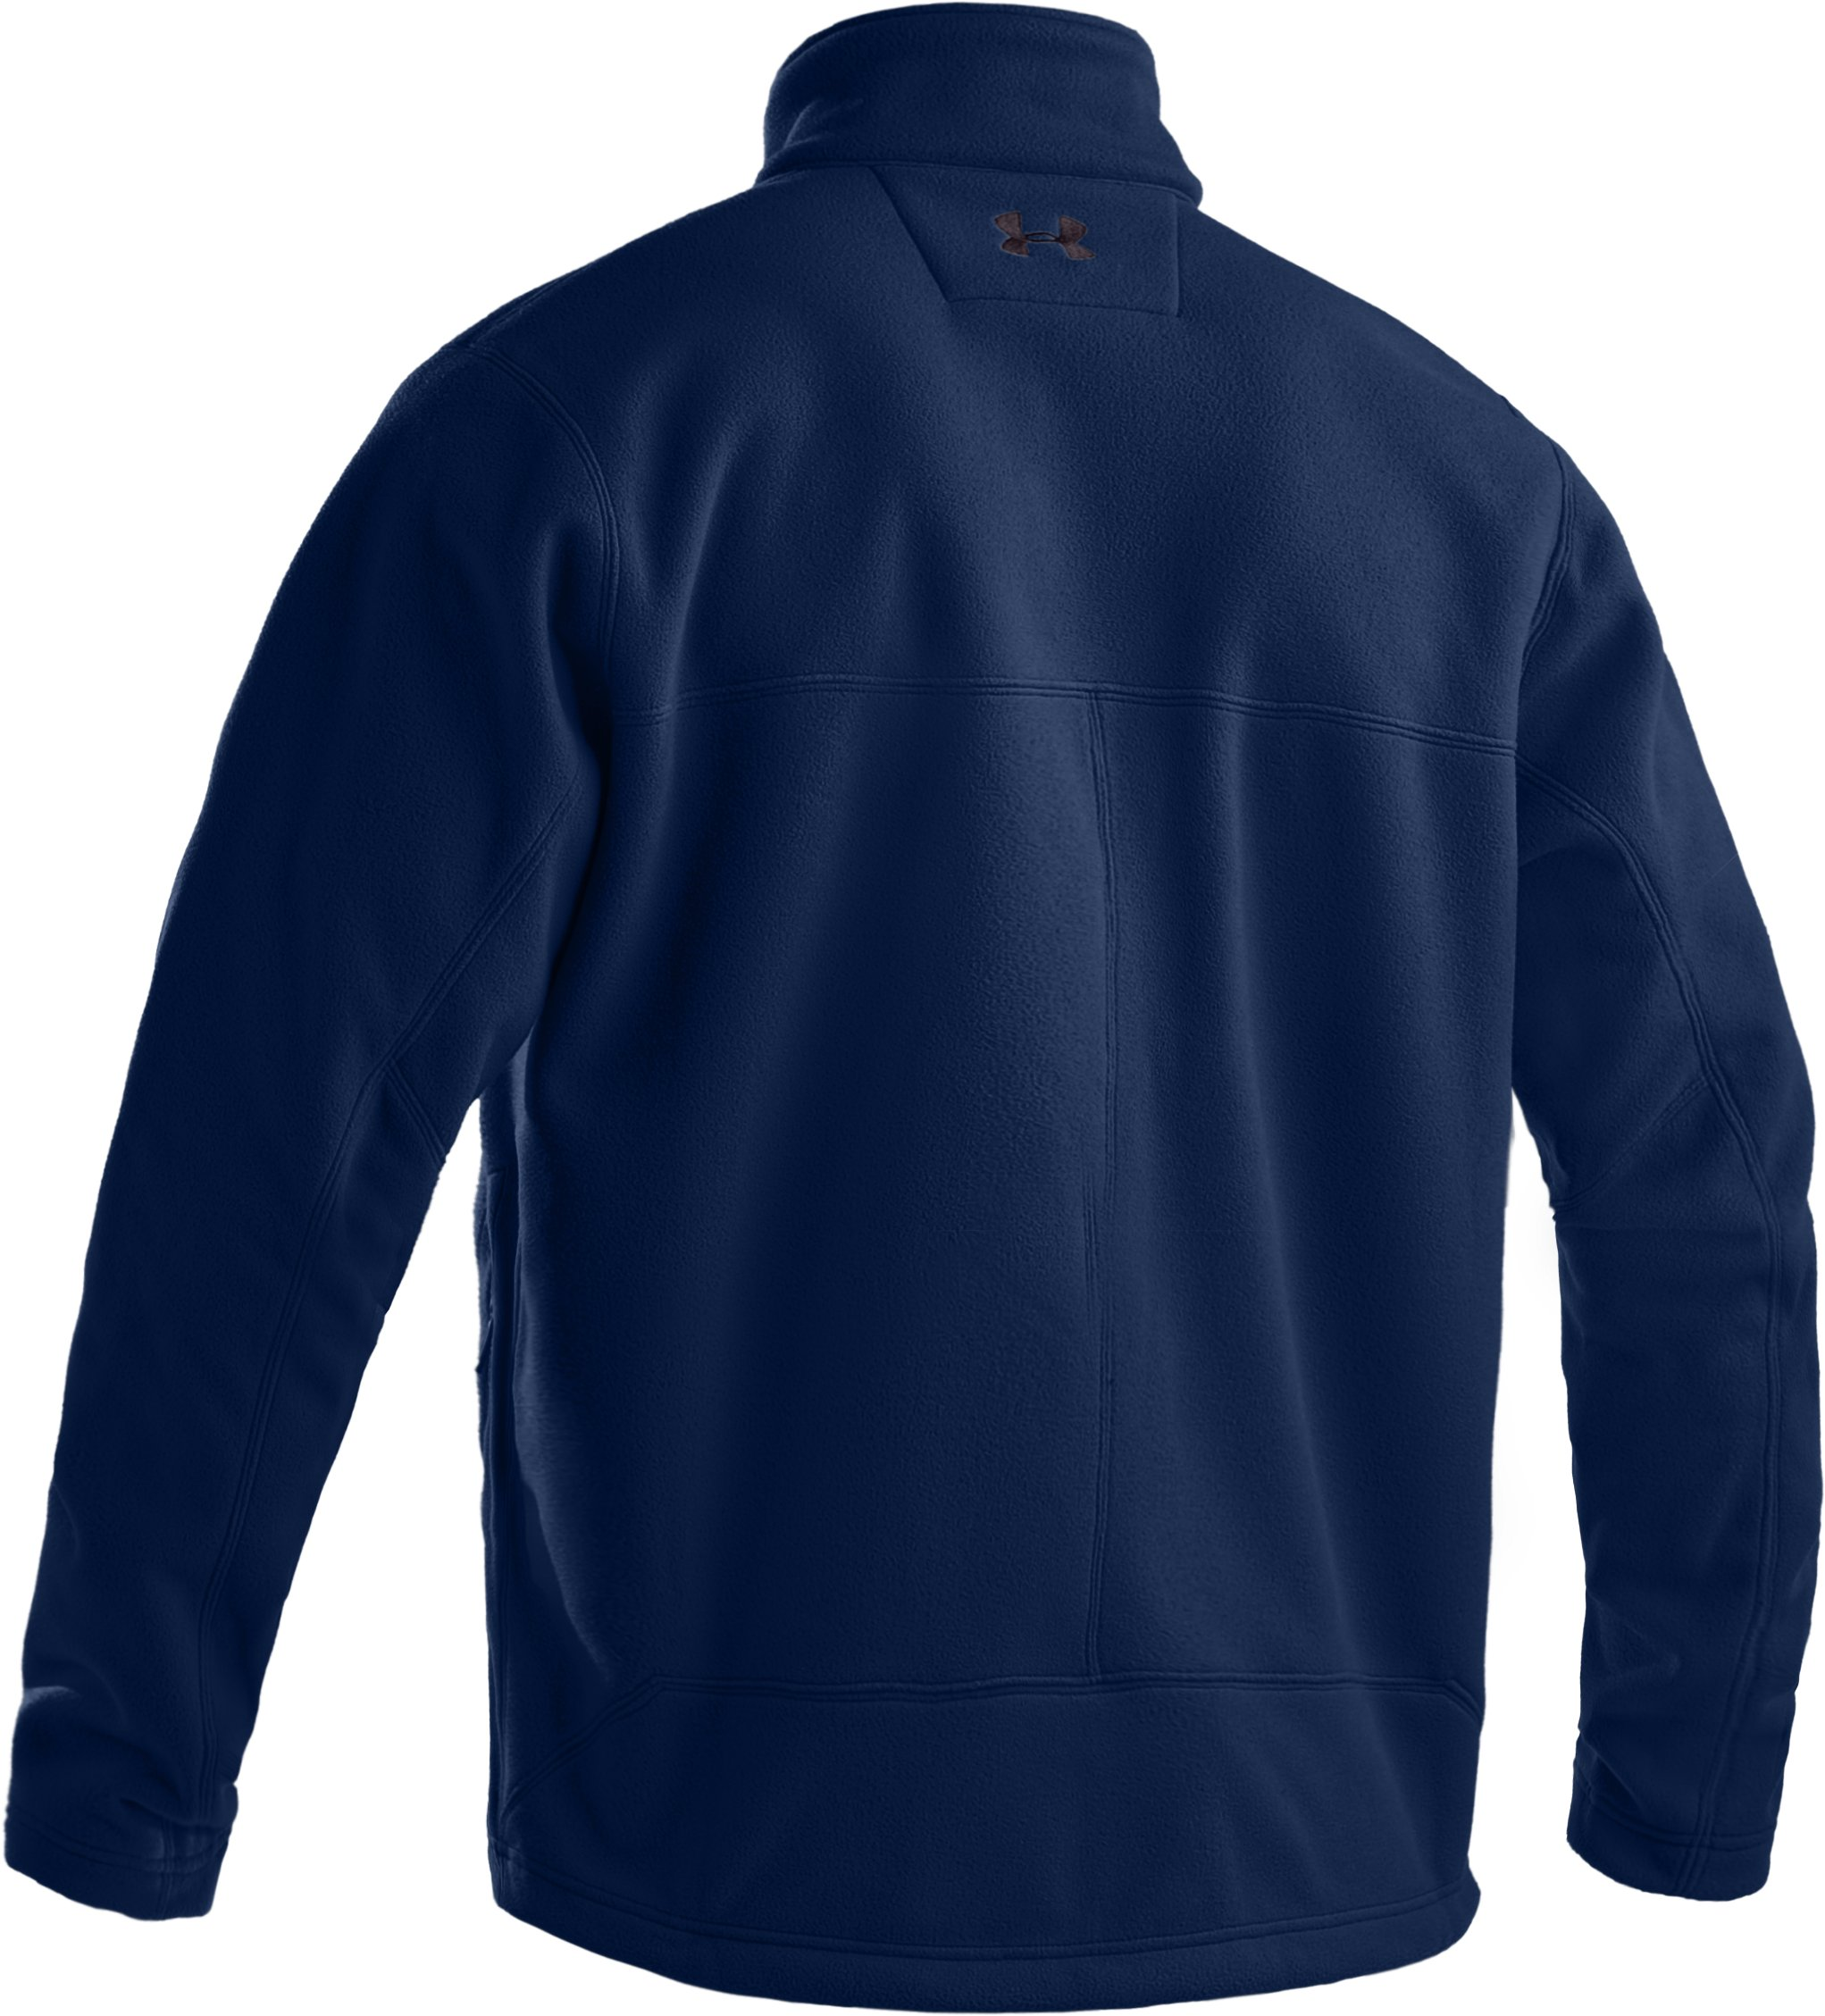 Men's Derecho II Windproof Fleece Jacket, Admiral,